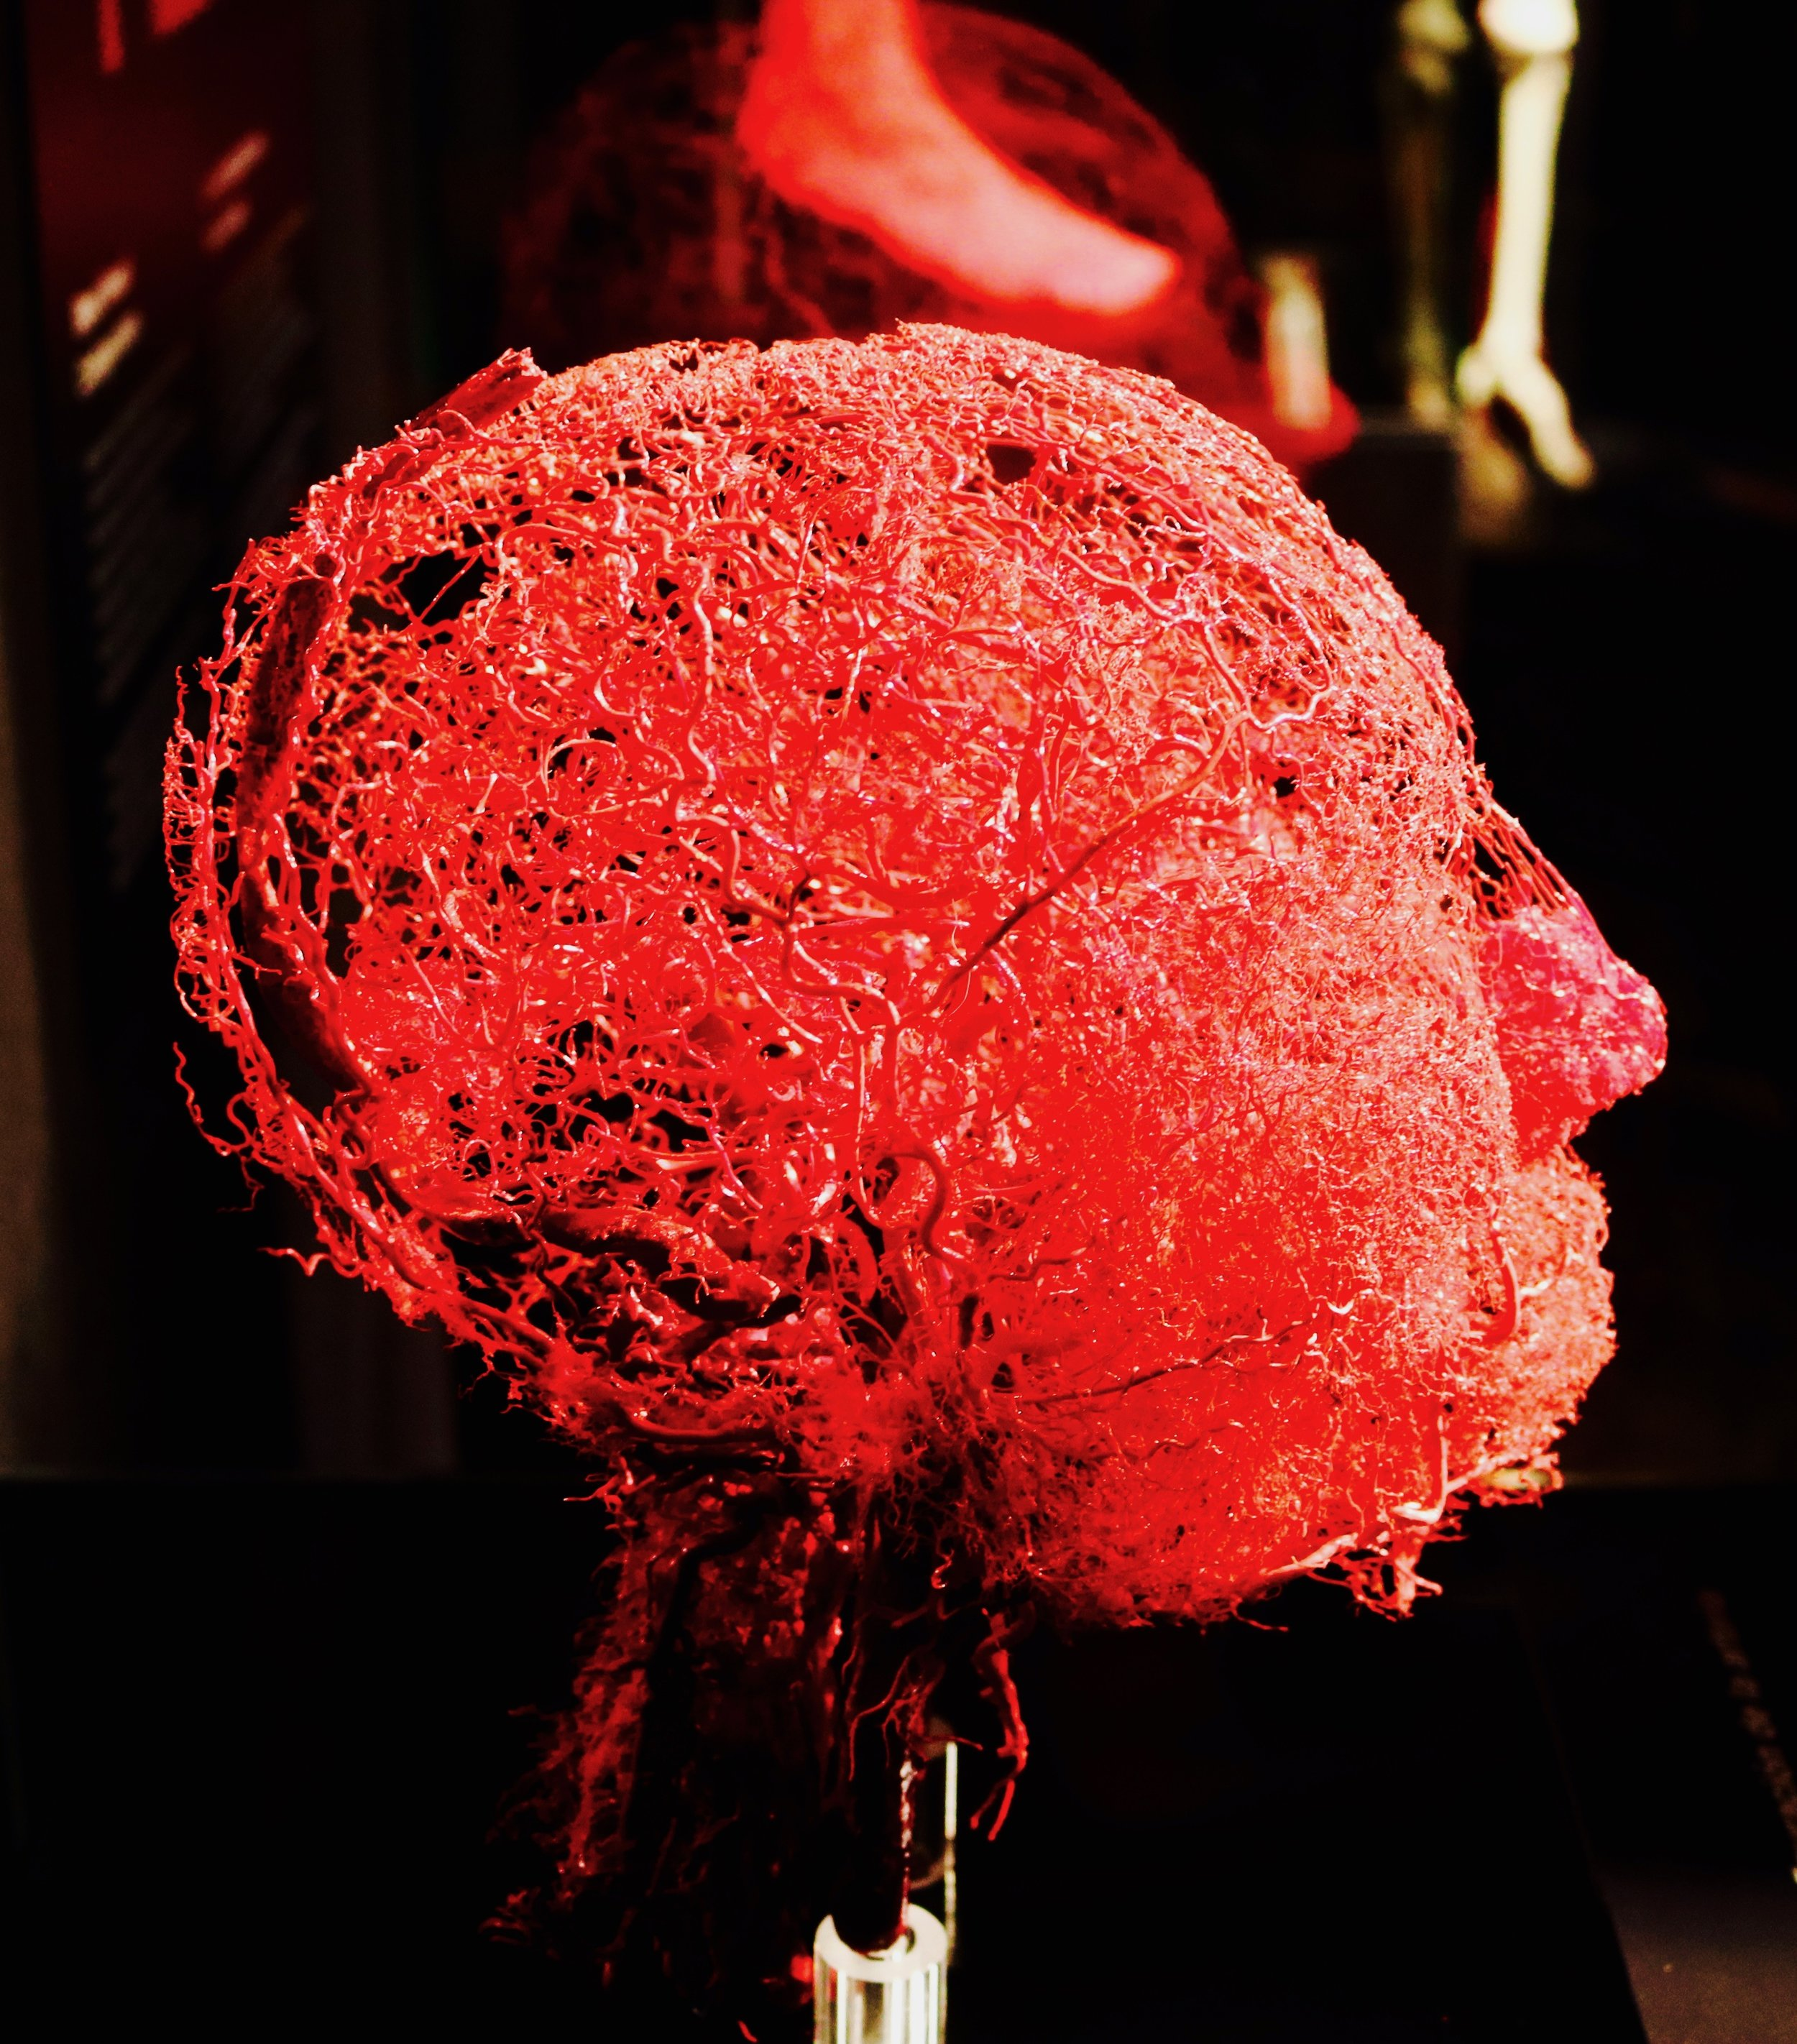 Blood Vessel Configuration of a Head: In the face there are numerous tiny blood vessels beneath the skin. Heat, intense physical activity, or stress hormones may cause these vessels to widen, which makes us turn red in the face.  Photo by: DJB for TBOT